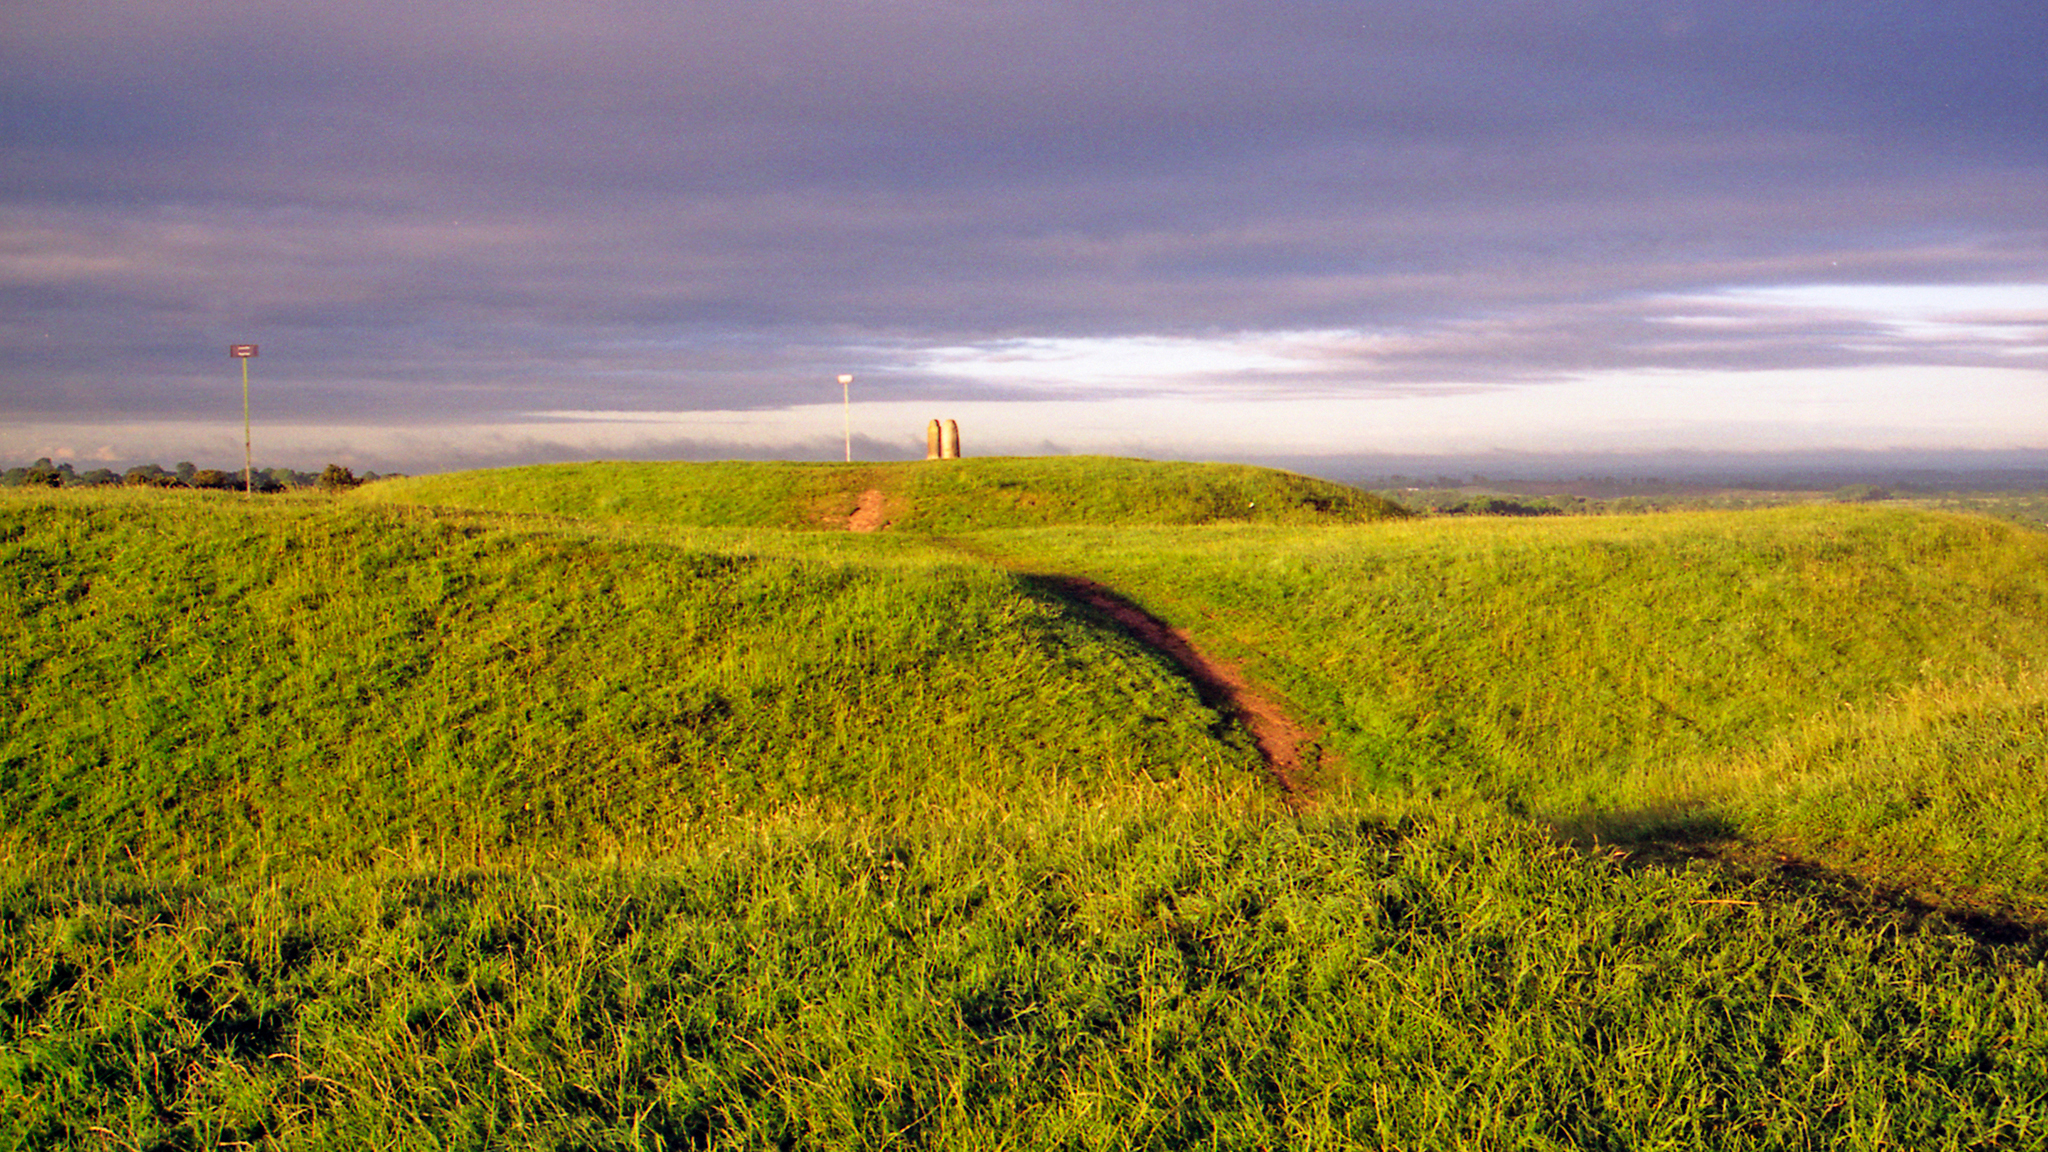 Iron age rath at the Hill of Tara in County Meath, Ireland. Tara was once the ancient capital of Ireland, from where the high king ruled over the country. The upright stone you see on the mound is the Lia Fail (stone of destiny). According to Celtic legend the Lia Fail was used during the coronation of the high king, and was believe to emit a roar when the true high king touched it. (I tried but there was no sound, so I crossed being high king of Ireland off my list of potential destinies).